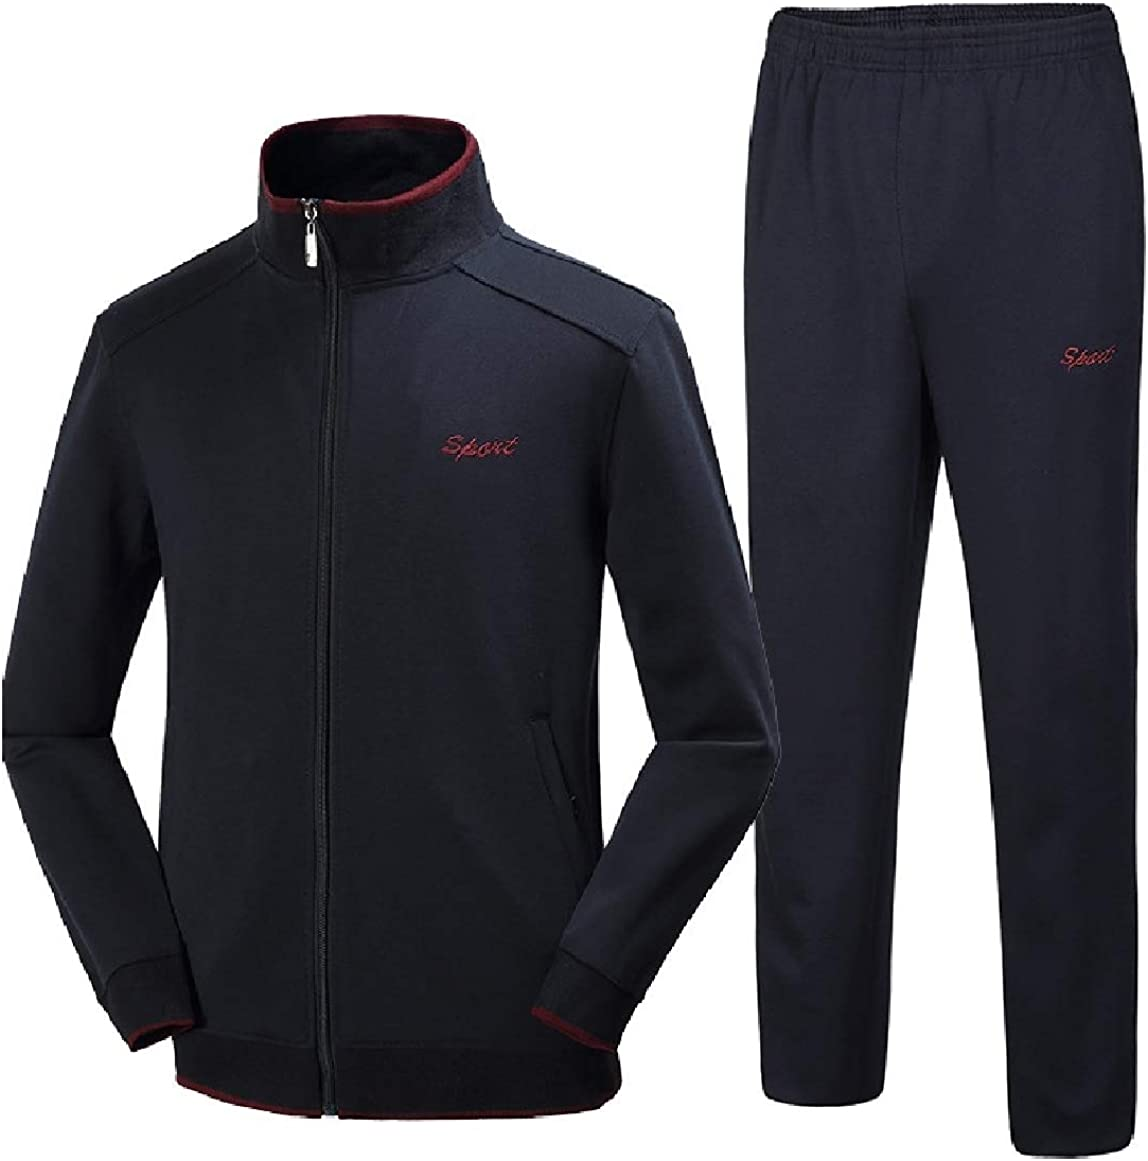 RingBong Mens Two-Piece Spring//Fall Sports Plus Size Tops Jackets and Sweatpants Sets